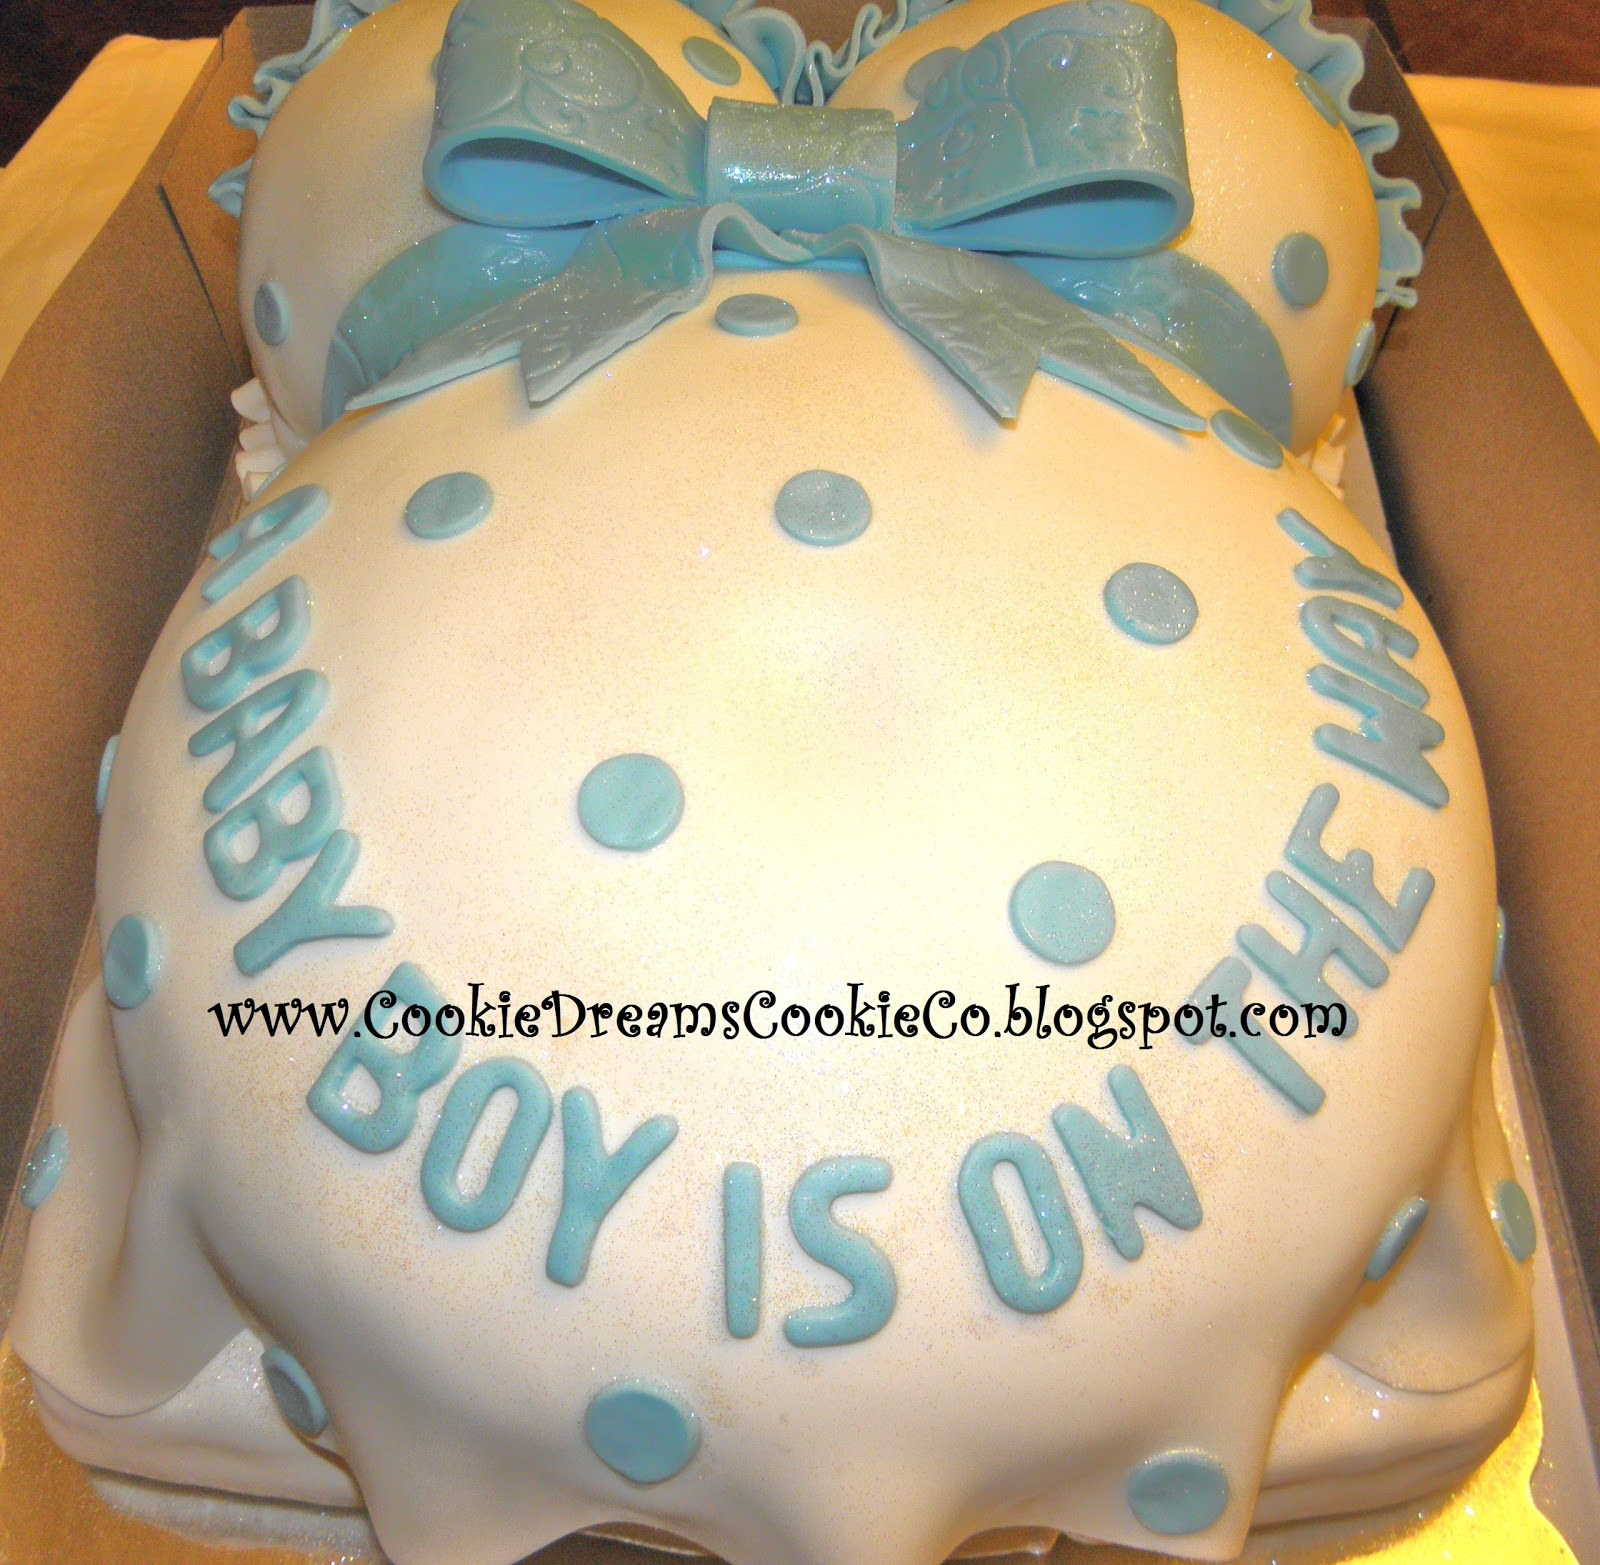 Cookie Dreams Cookie Co Pregnant Belly Cake